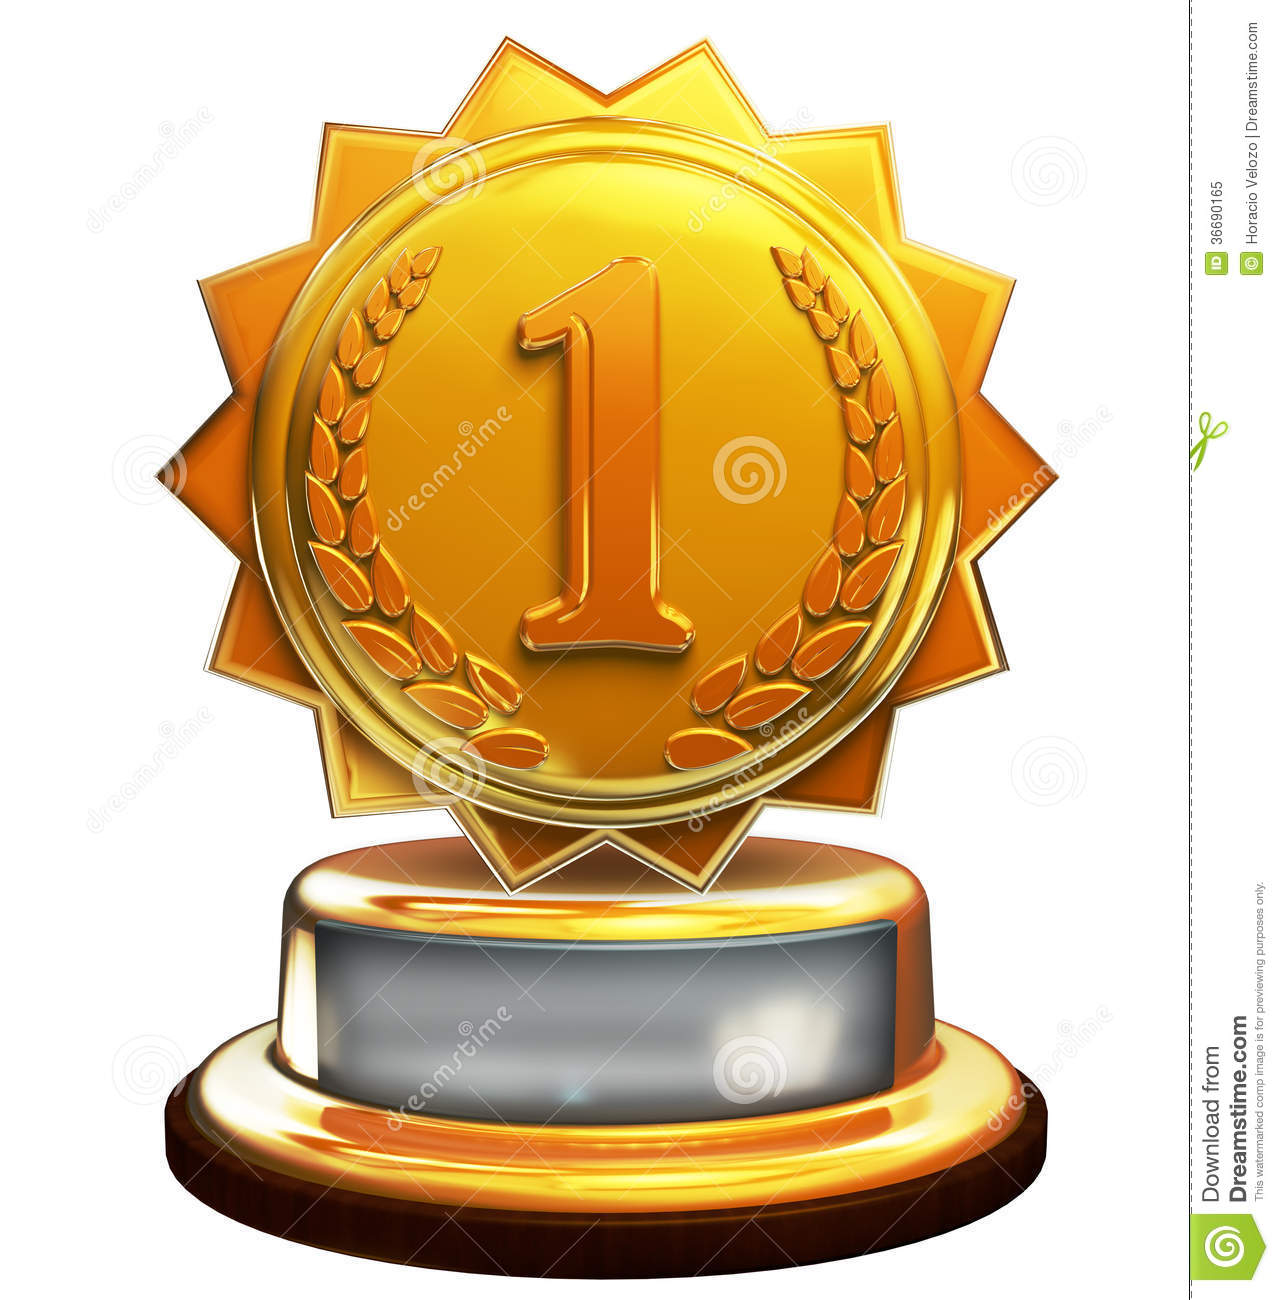 Number 1 trophy clipart clip art free First Place Gold Award, Number One, Clipping Mask Royalty Free ... clip art free